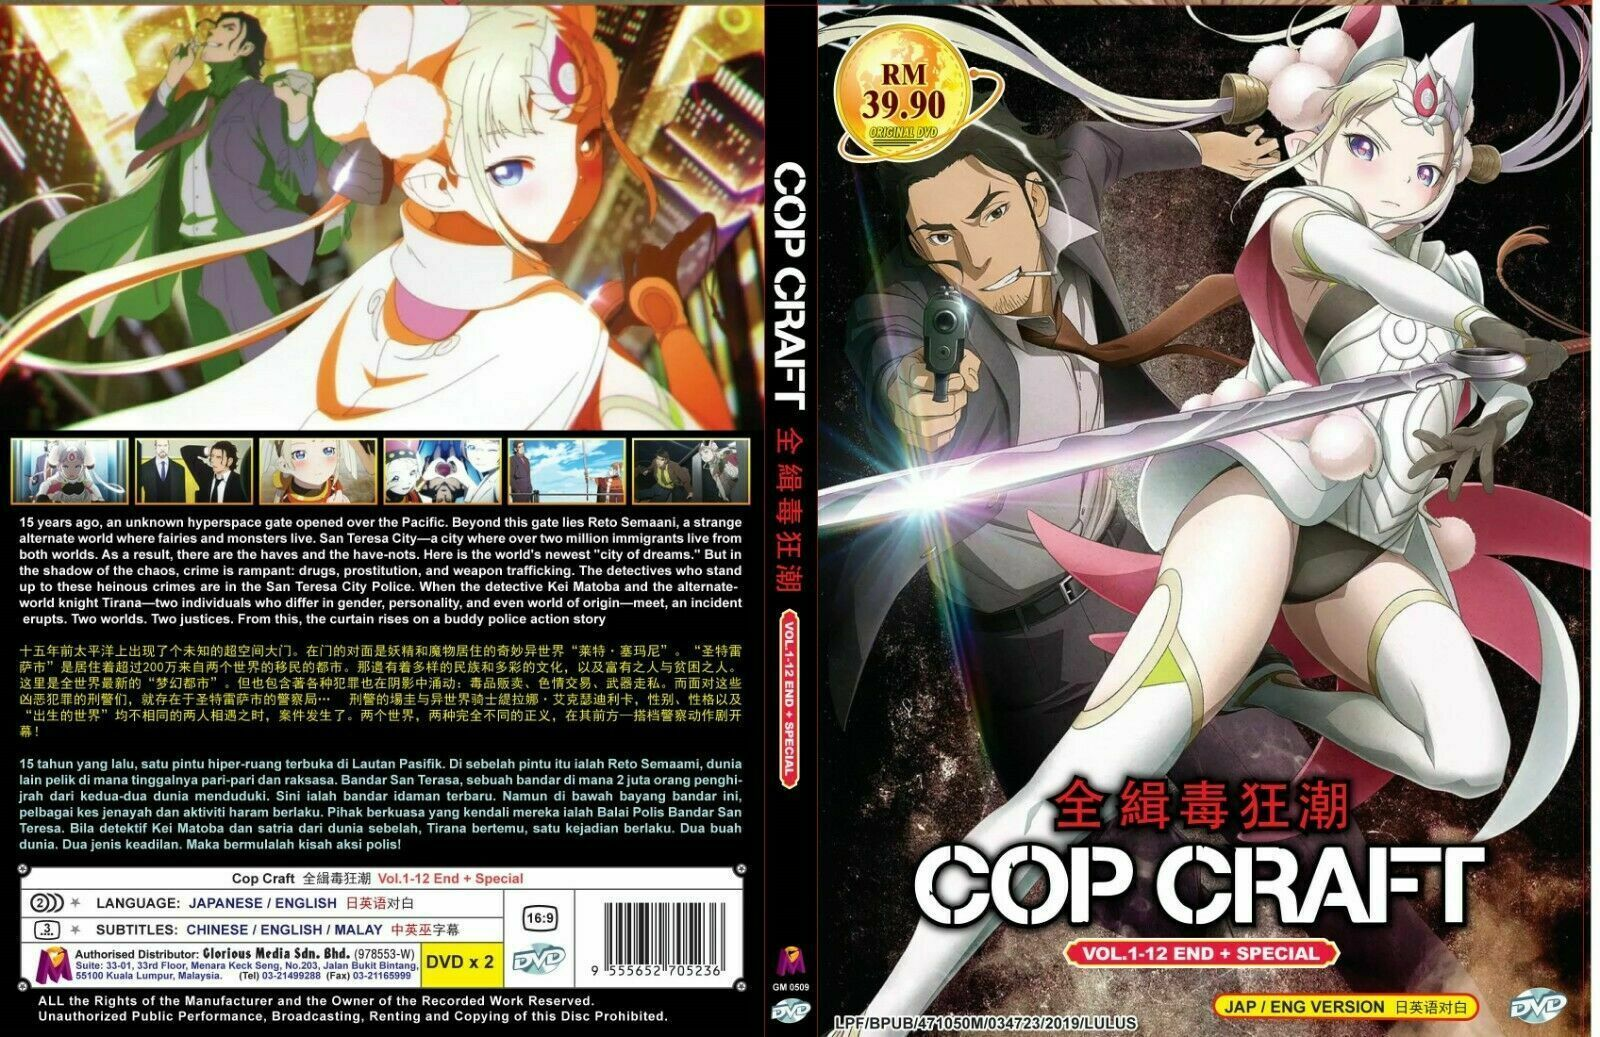 Cop Craft Vol.1-12 End + Special English Dubbed Ship From USA